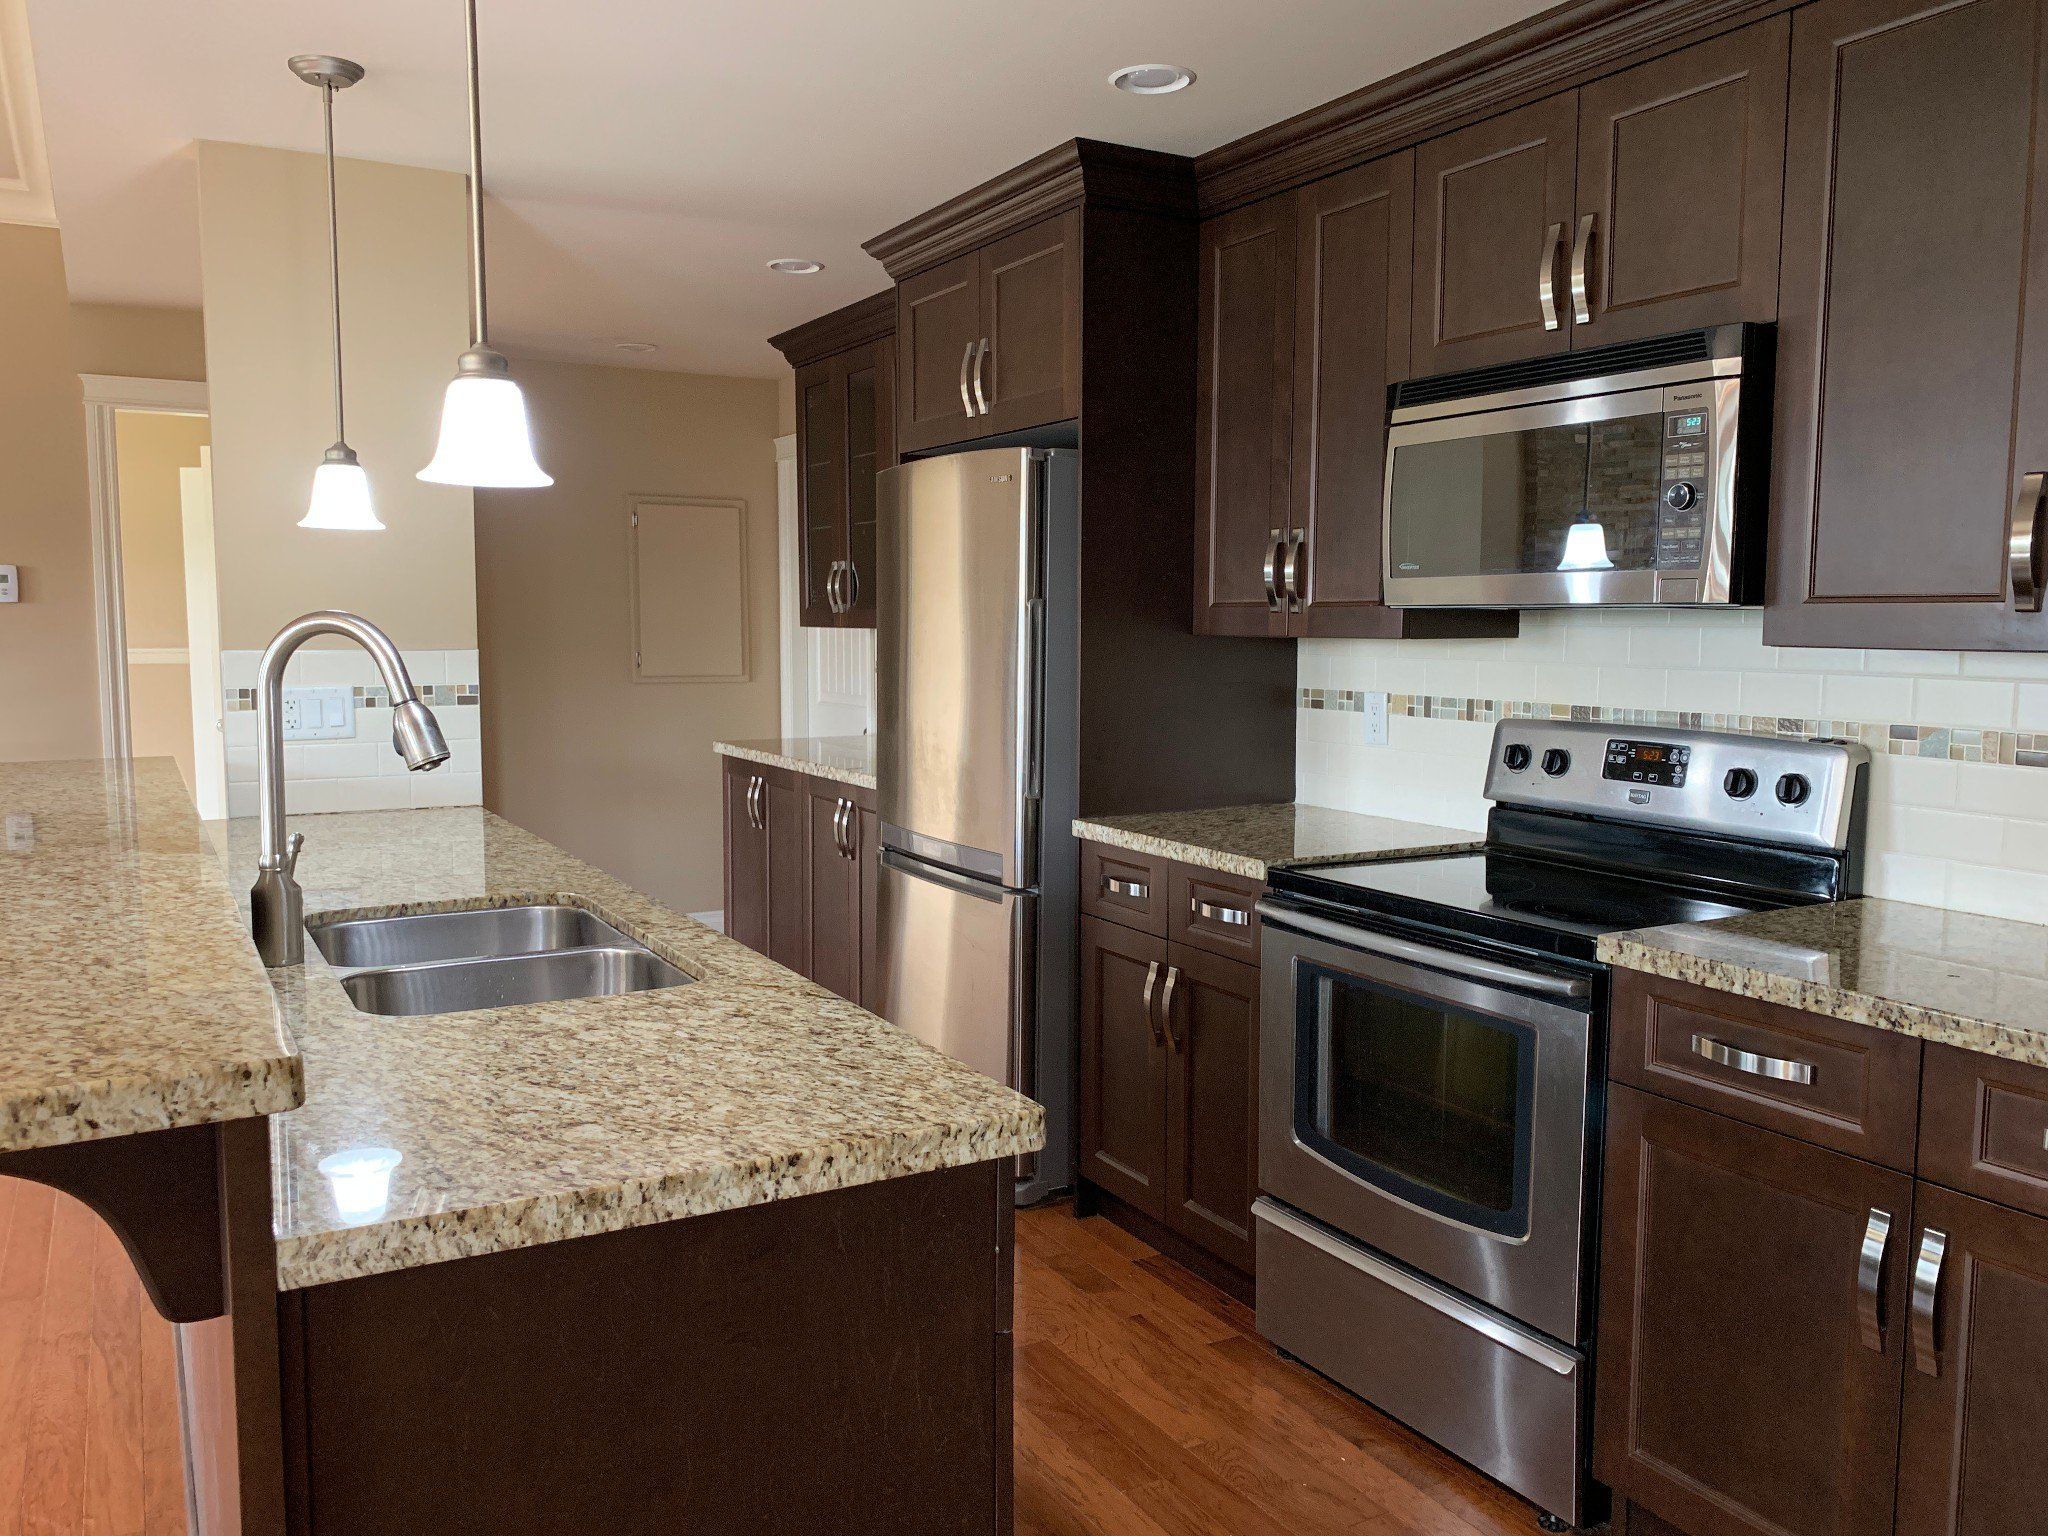 Photo 1: Photos: BSMT 3975 Caves Court in Abbotsford: Abbotsford East Condo for rent